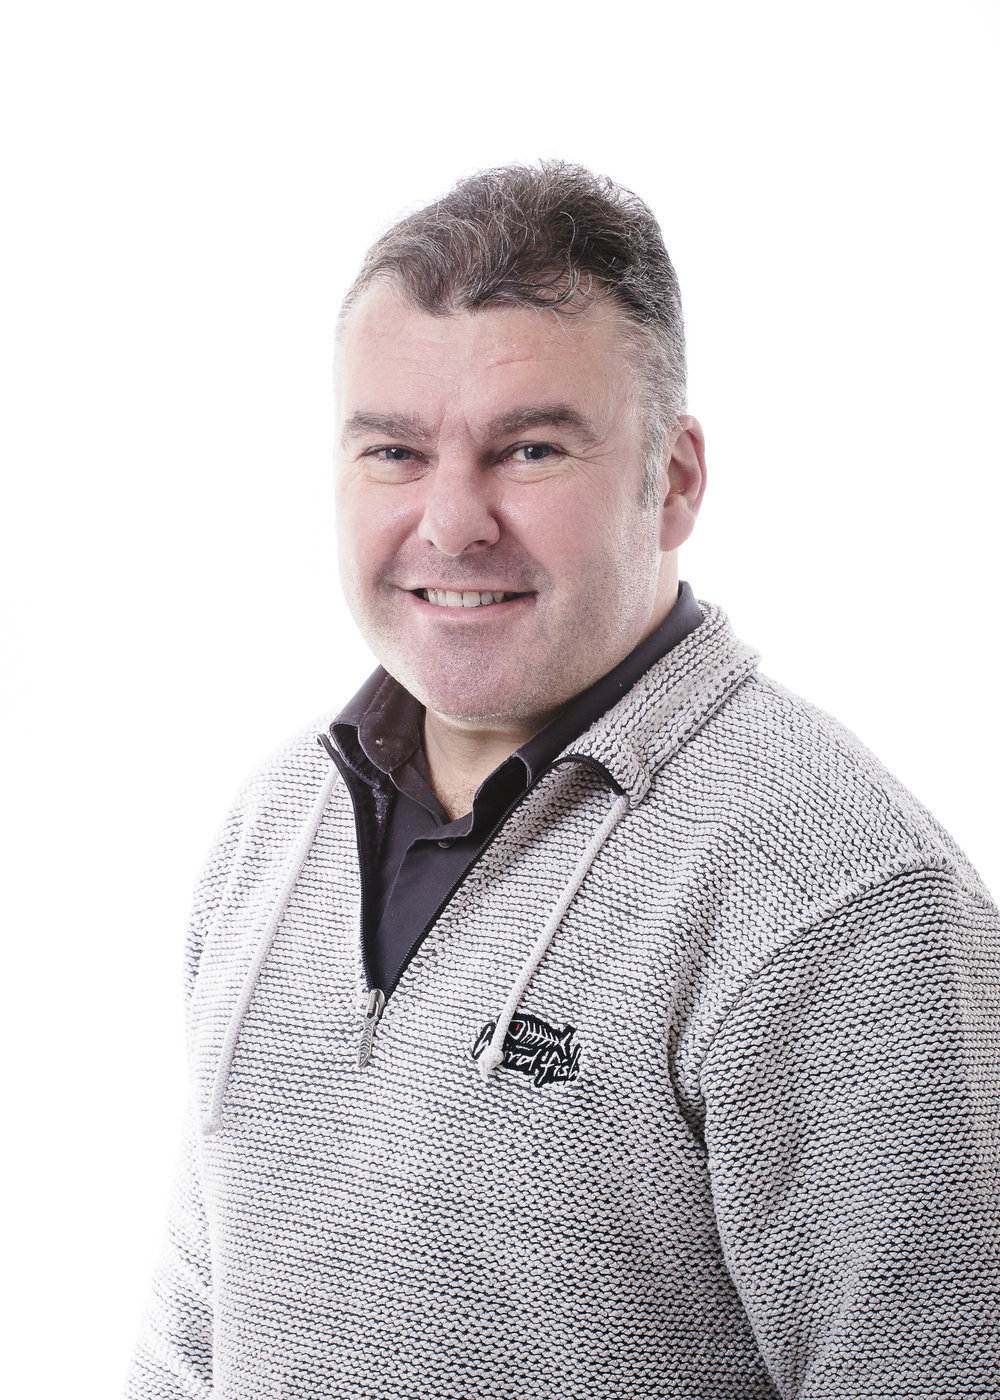 David Woodhead, Technical Support Officer